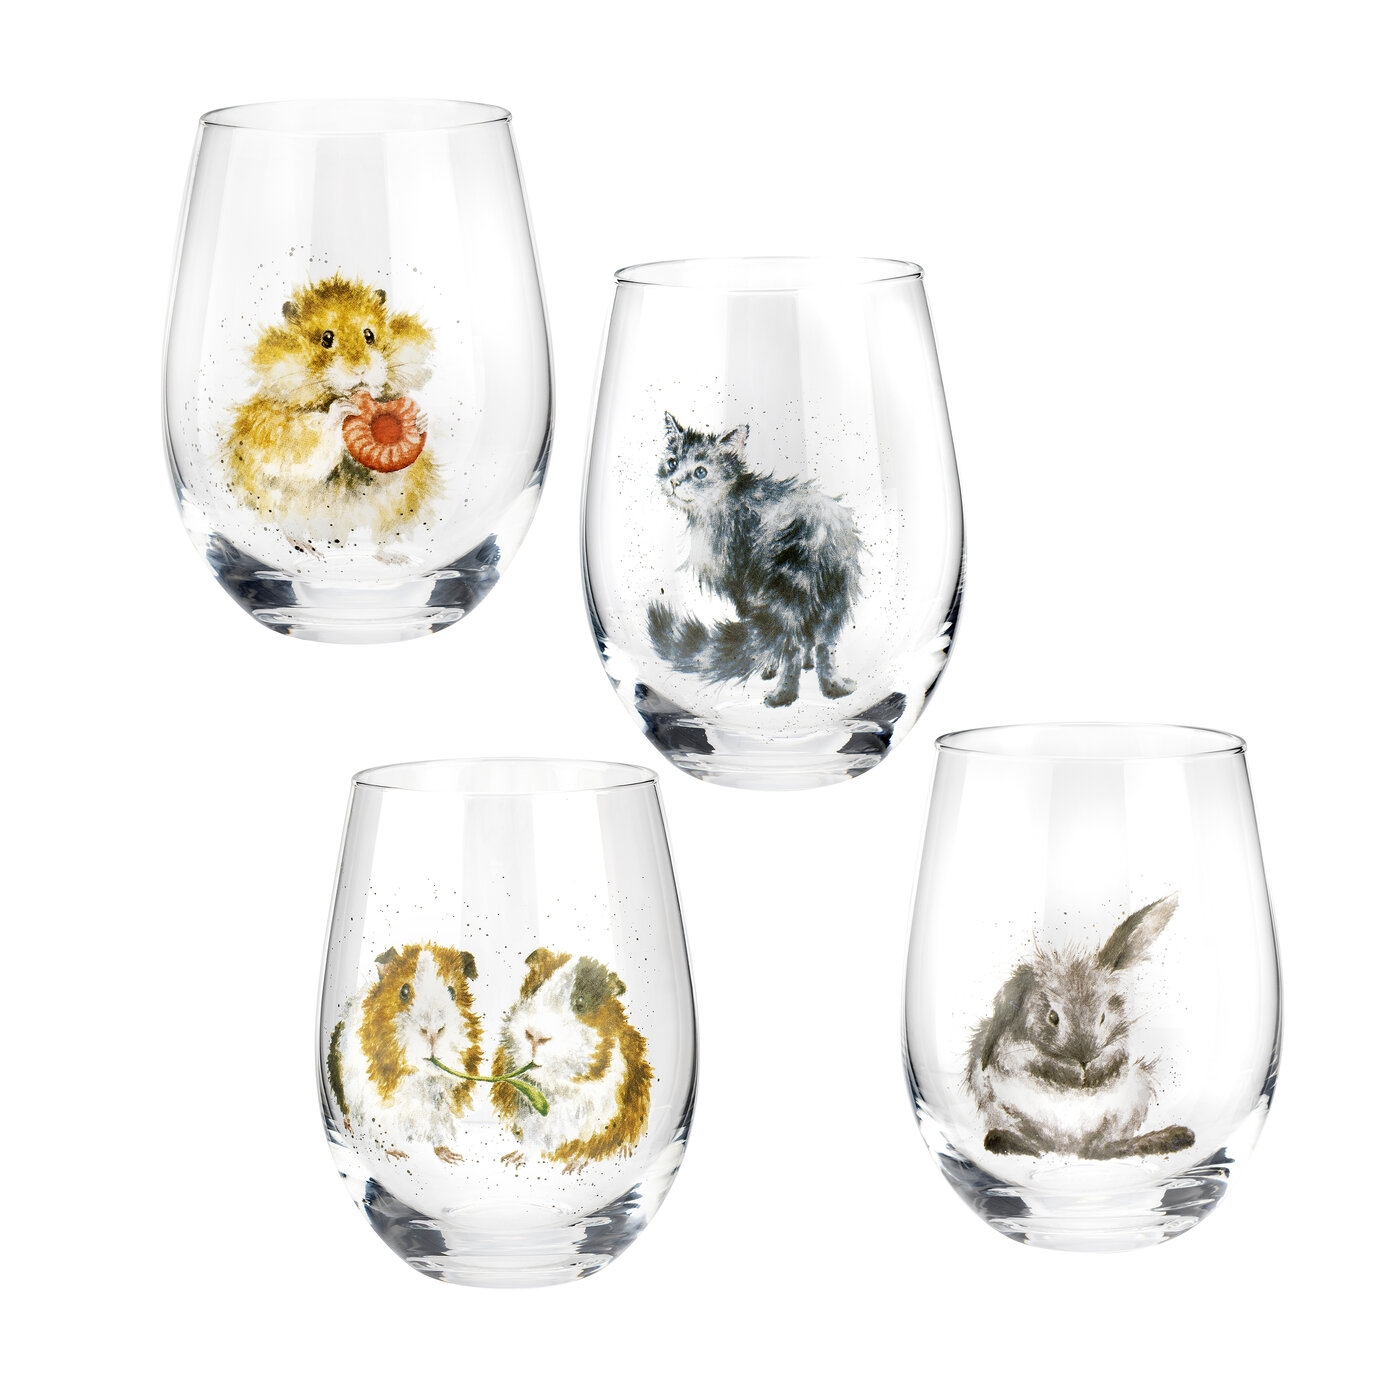 Wrendale Designs 17 Ounce Set of 4 Glass Tumblers (Assorted) image number 0